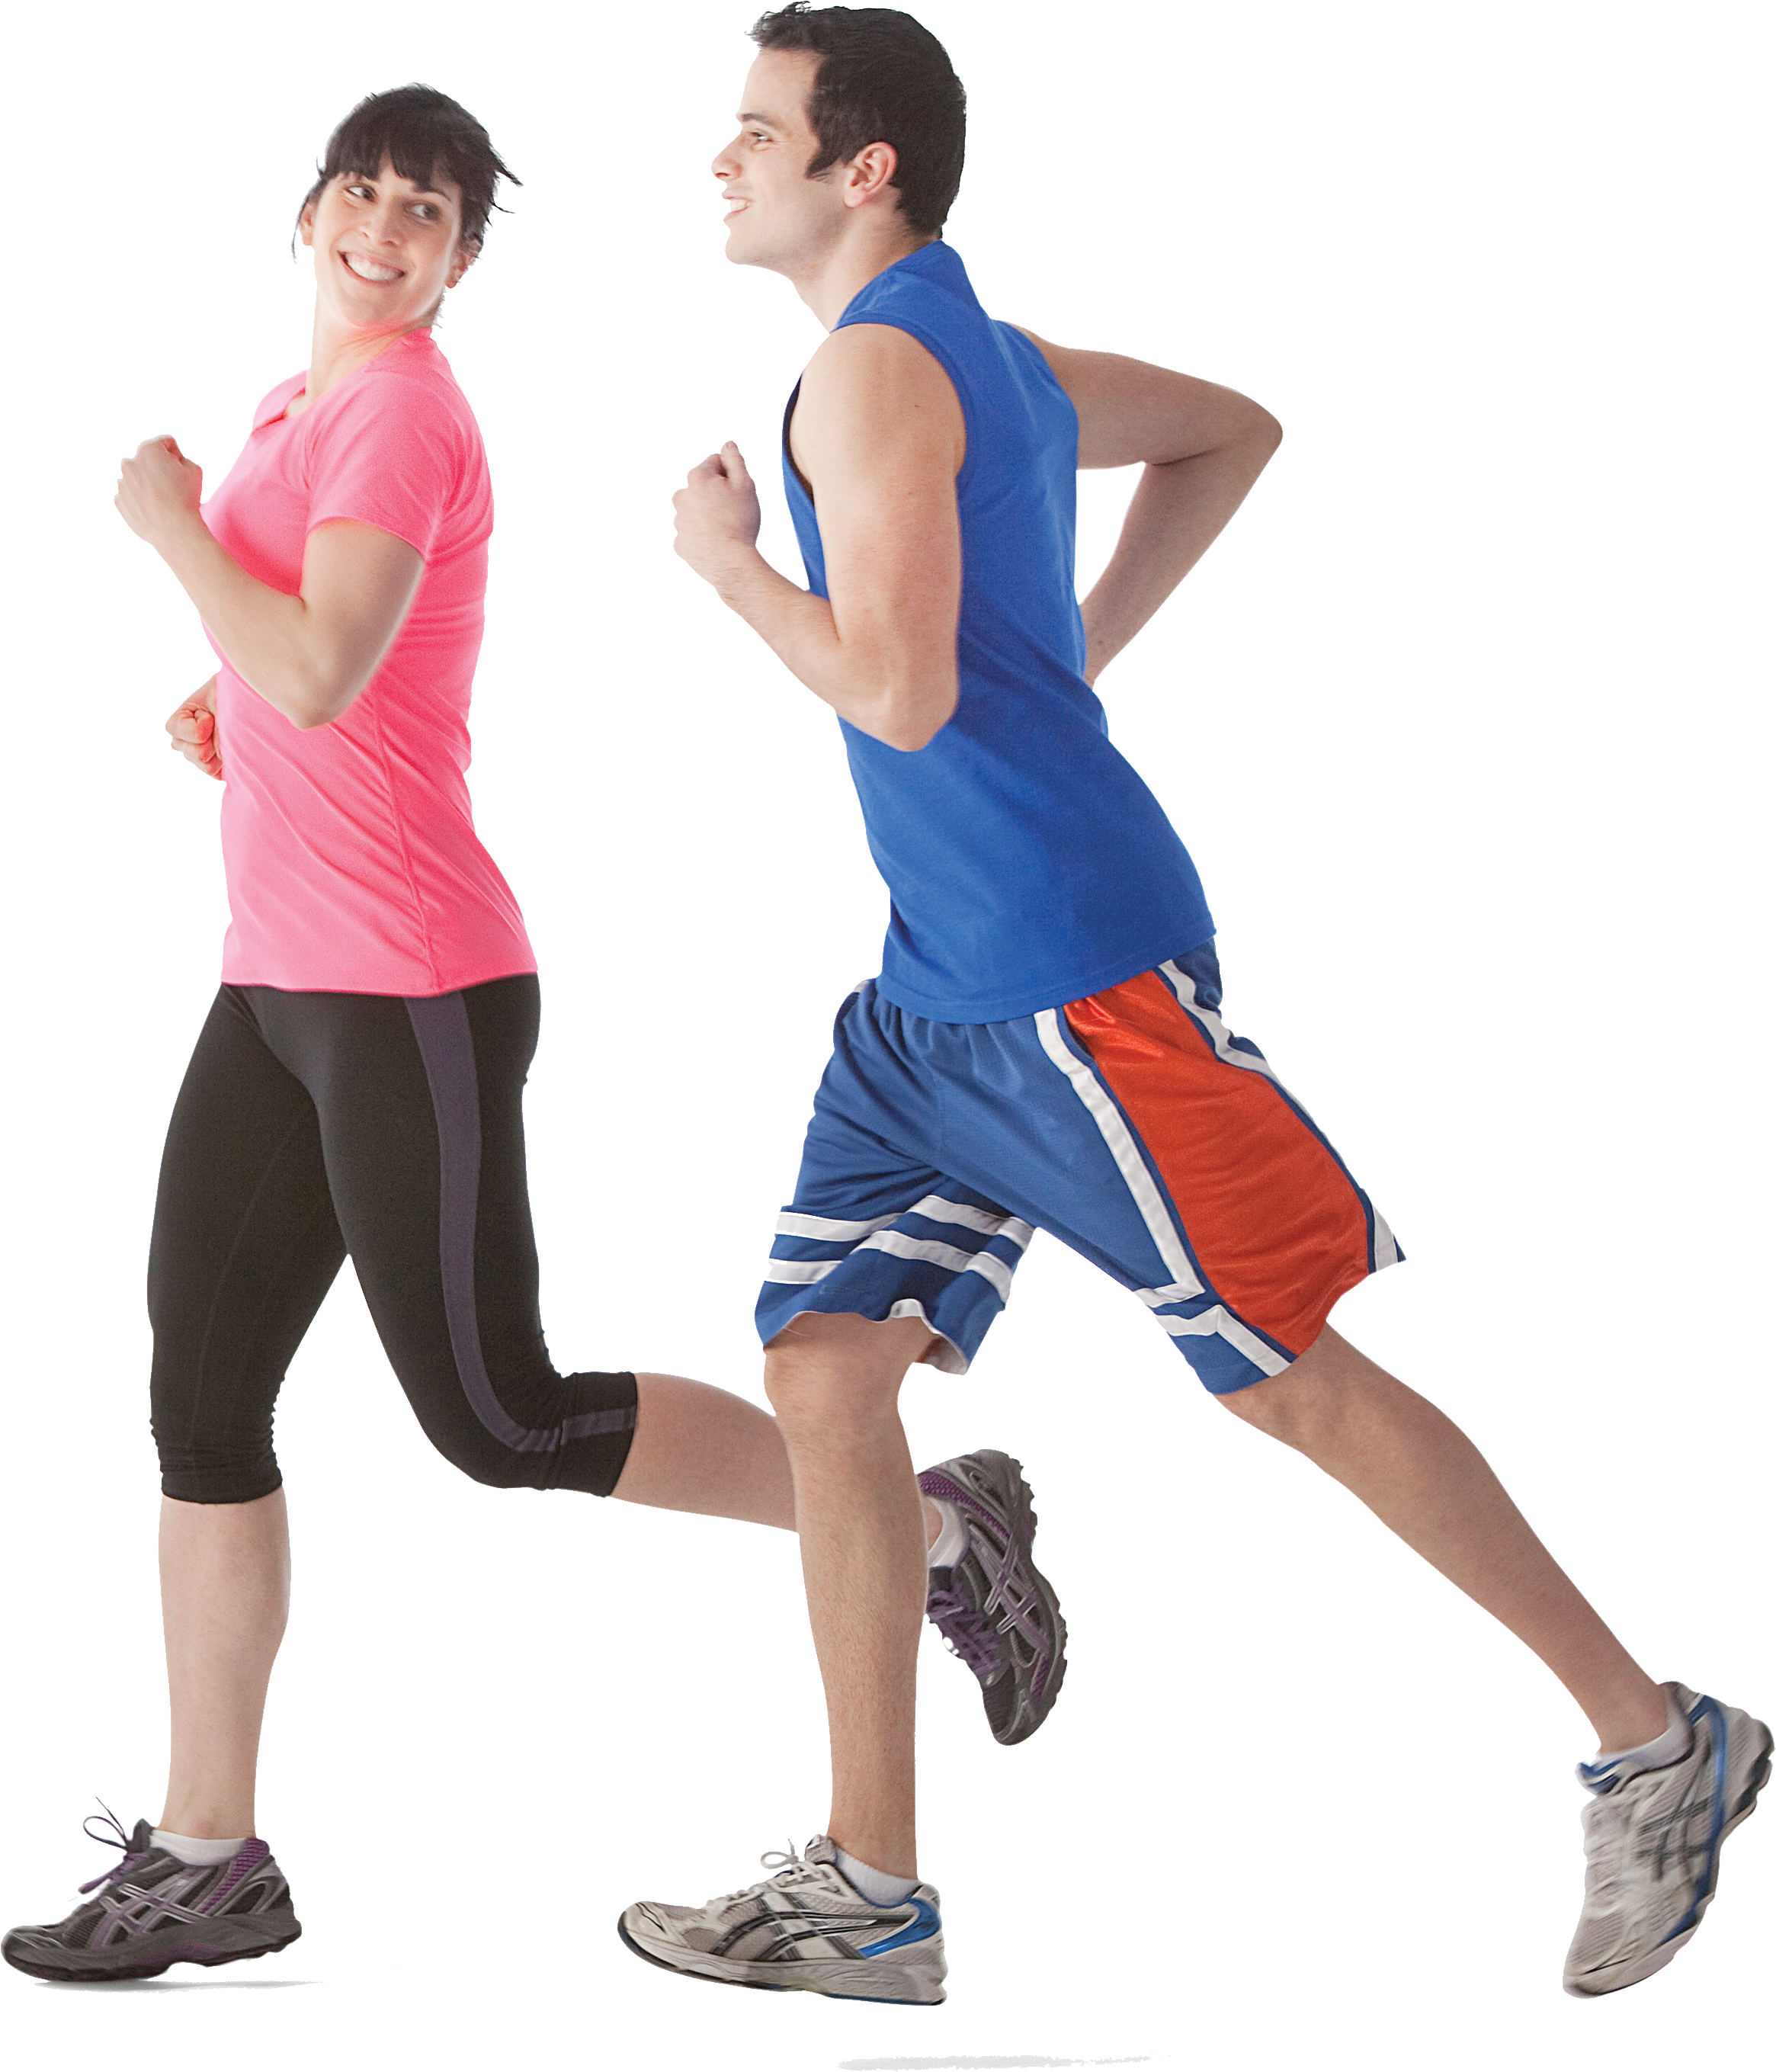 Running Man And Women PNG Image